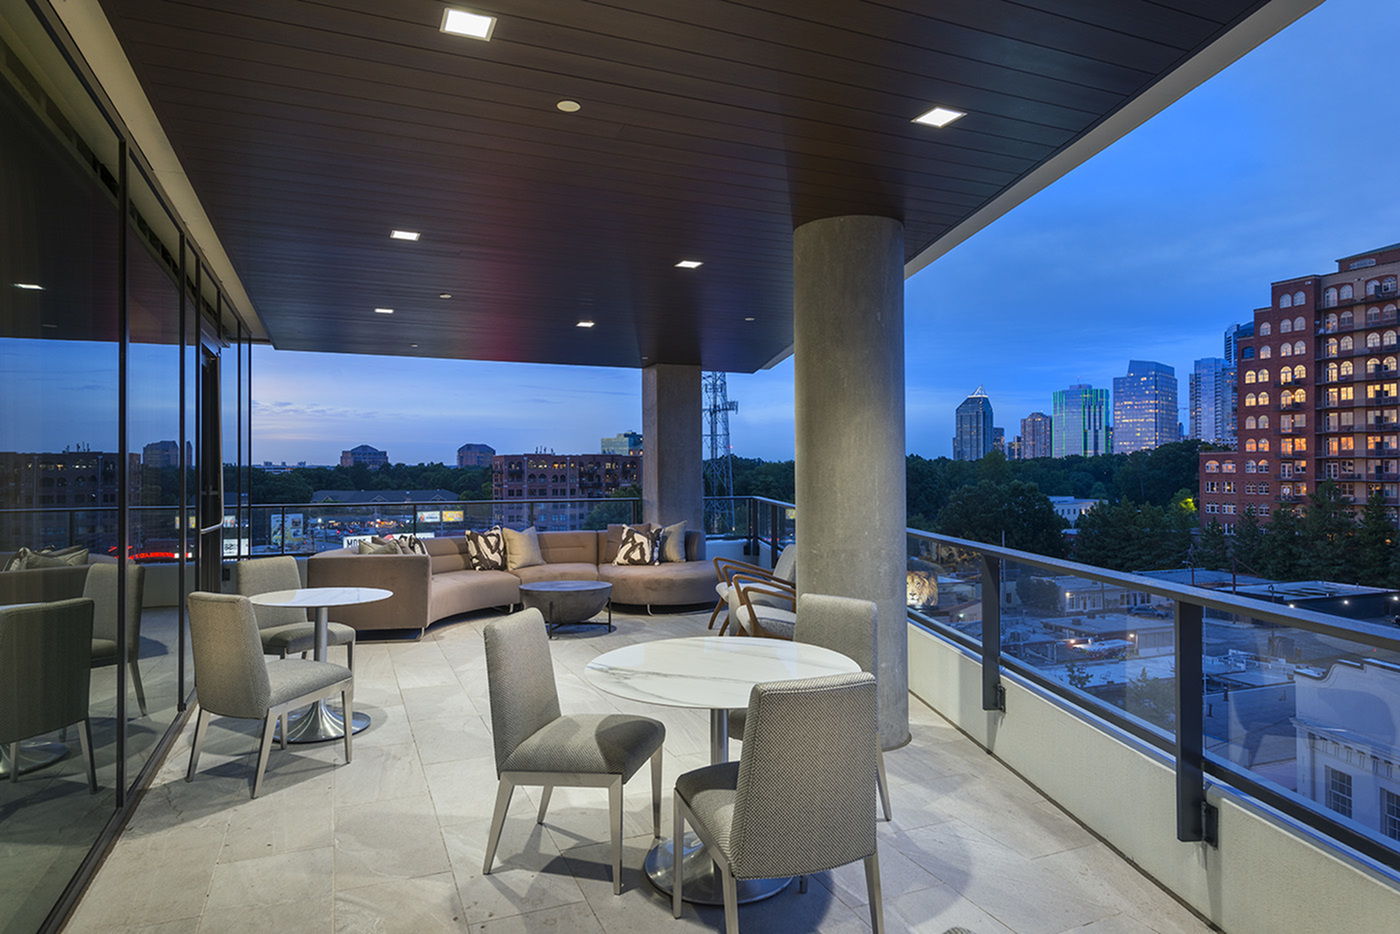 Open-air loggia with dining areas and Skyline views at Hanover Buckhead Village